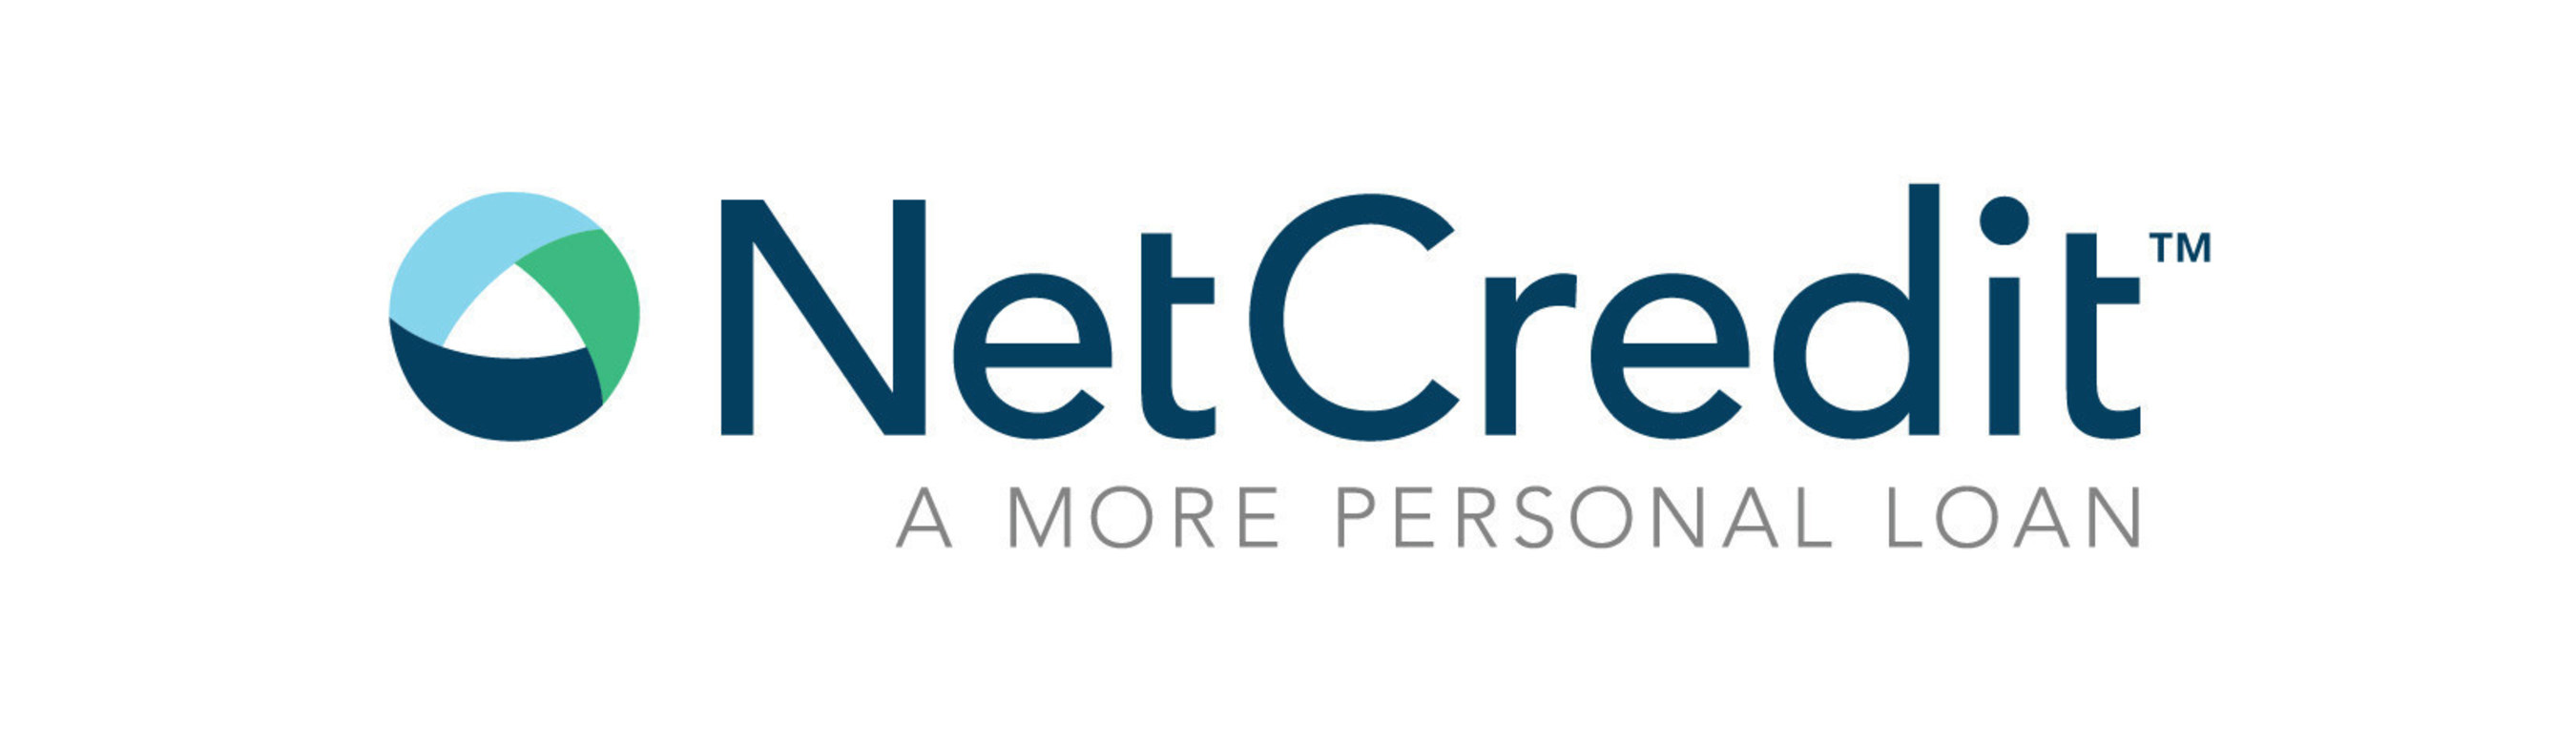 NetCredit is a personal loan provider that helps consumers get access to the credit they need.